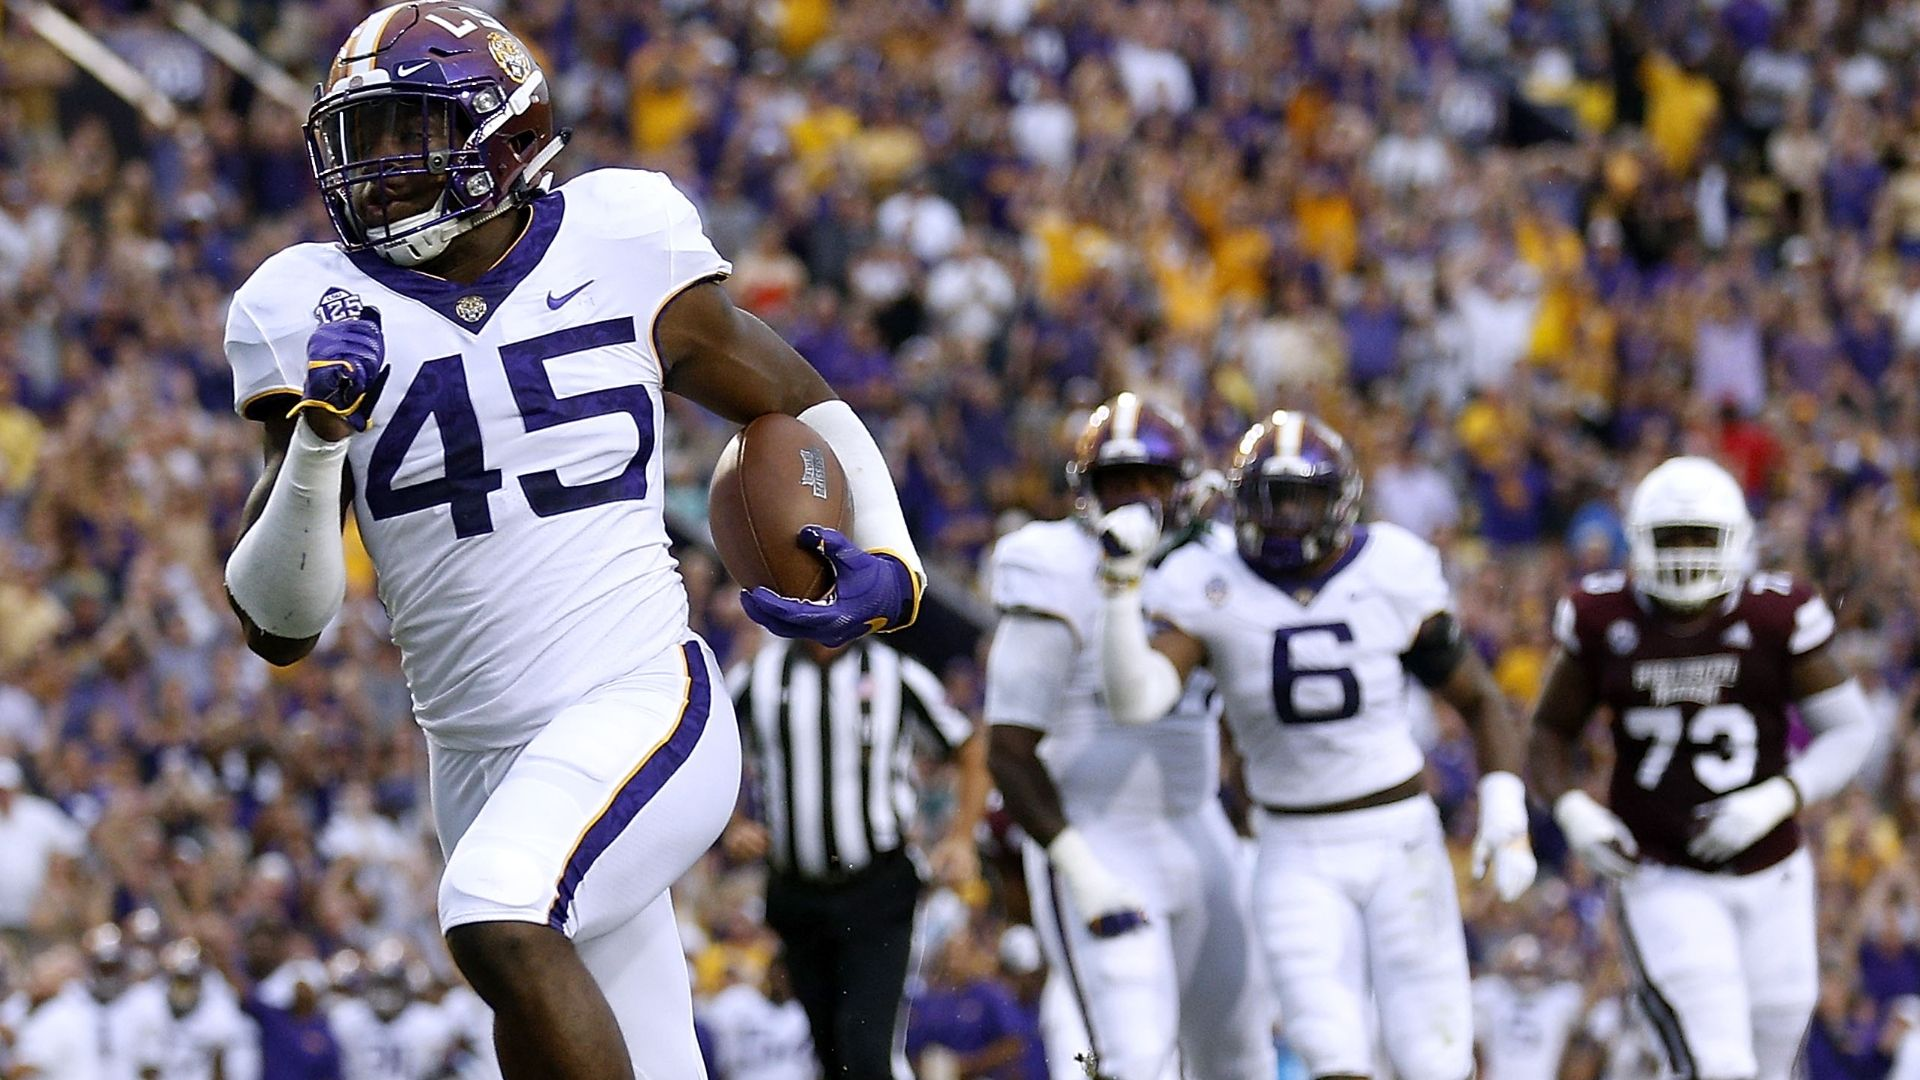 LSU's D carries them past Mississippi State